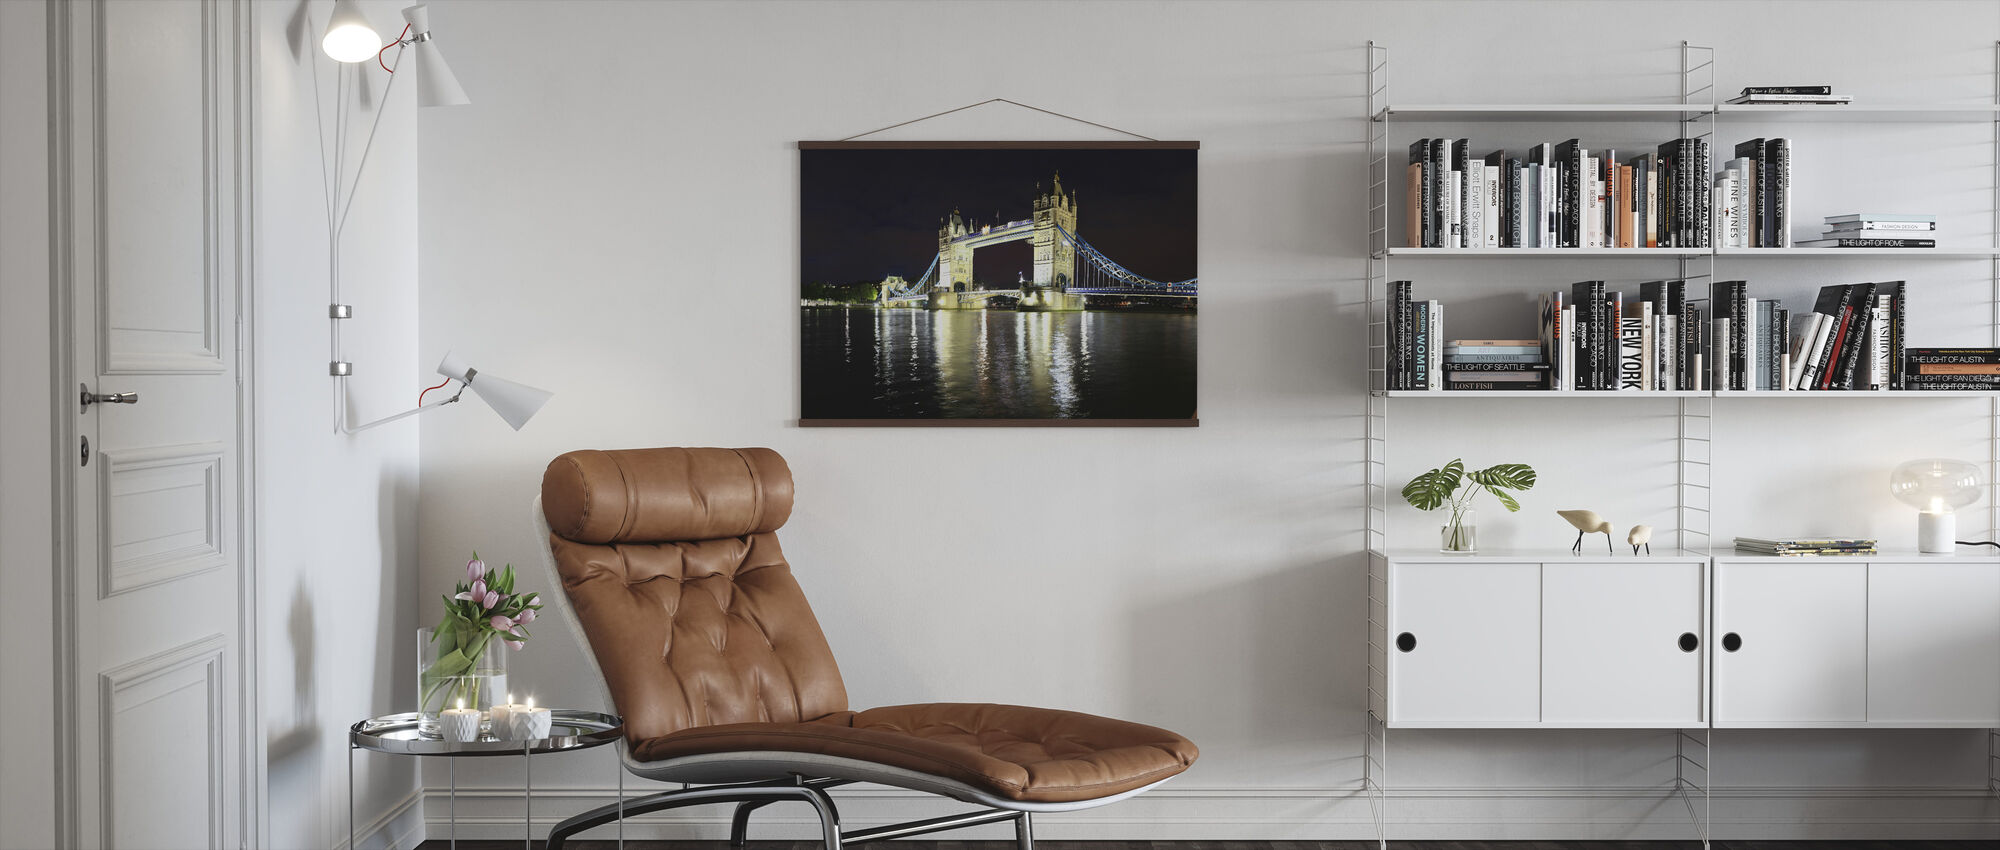 London Tower Bridge at Night - Poster - Living Room